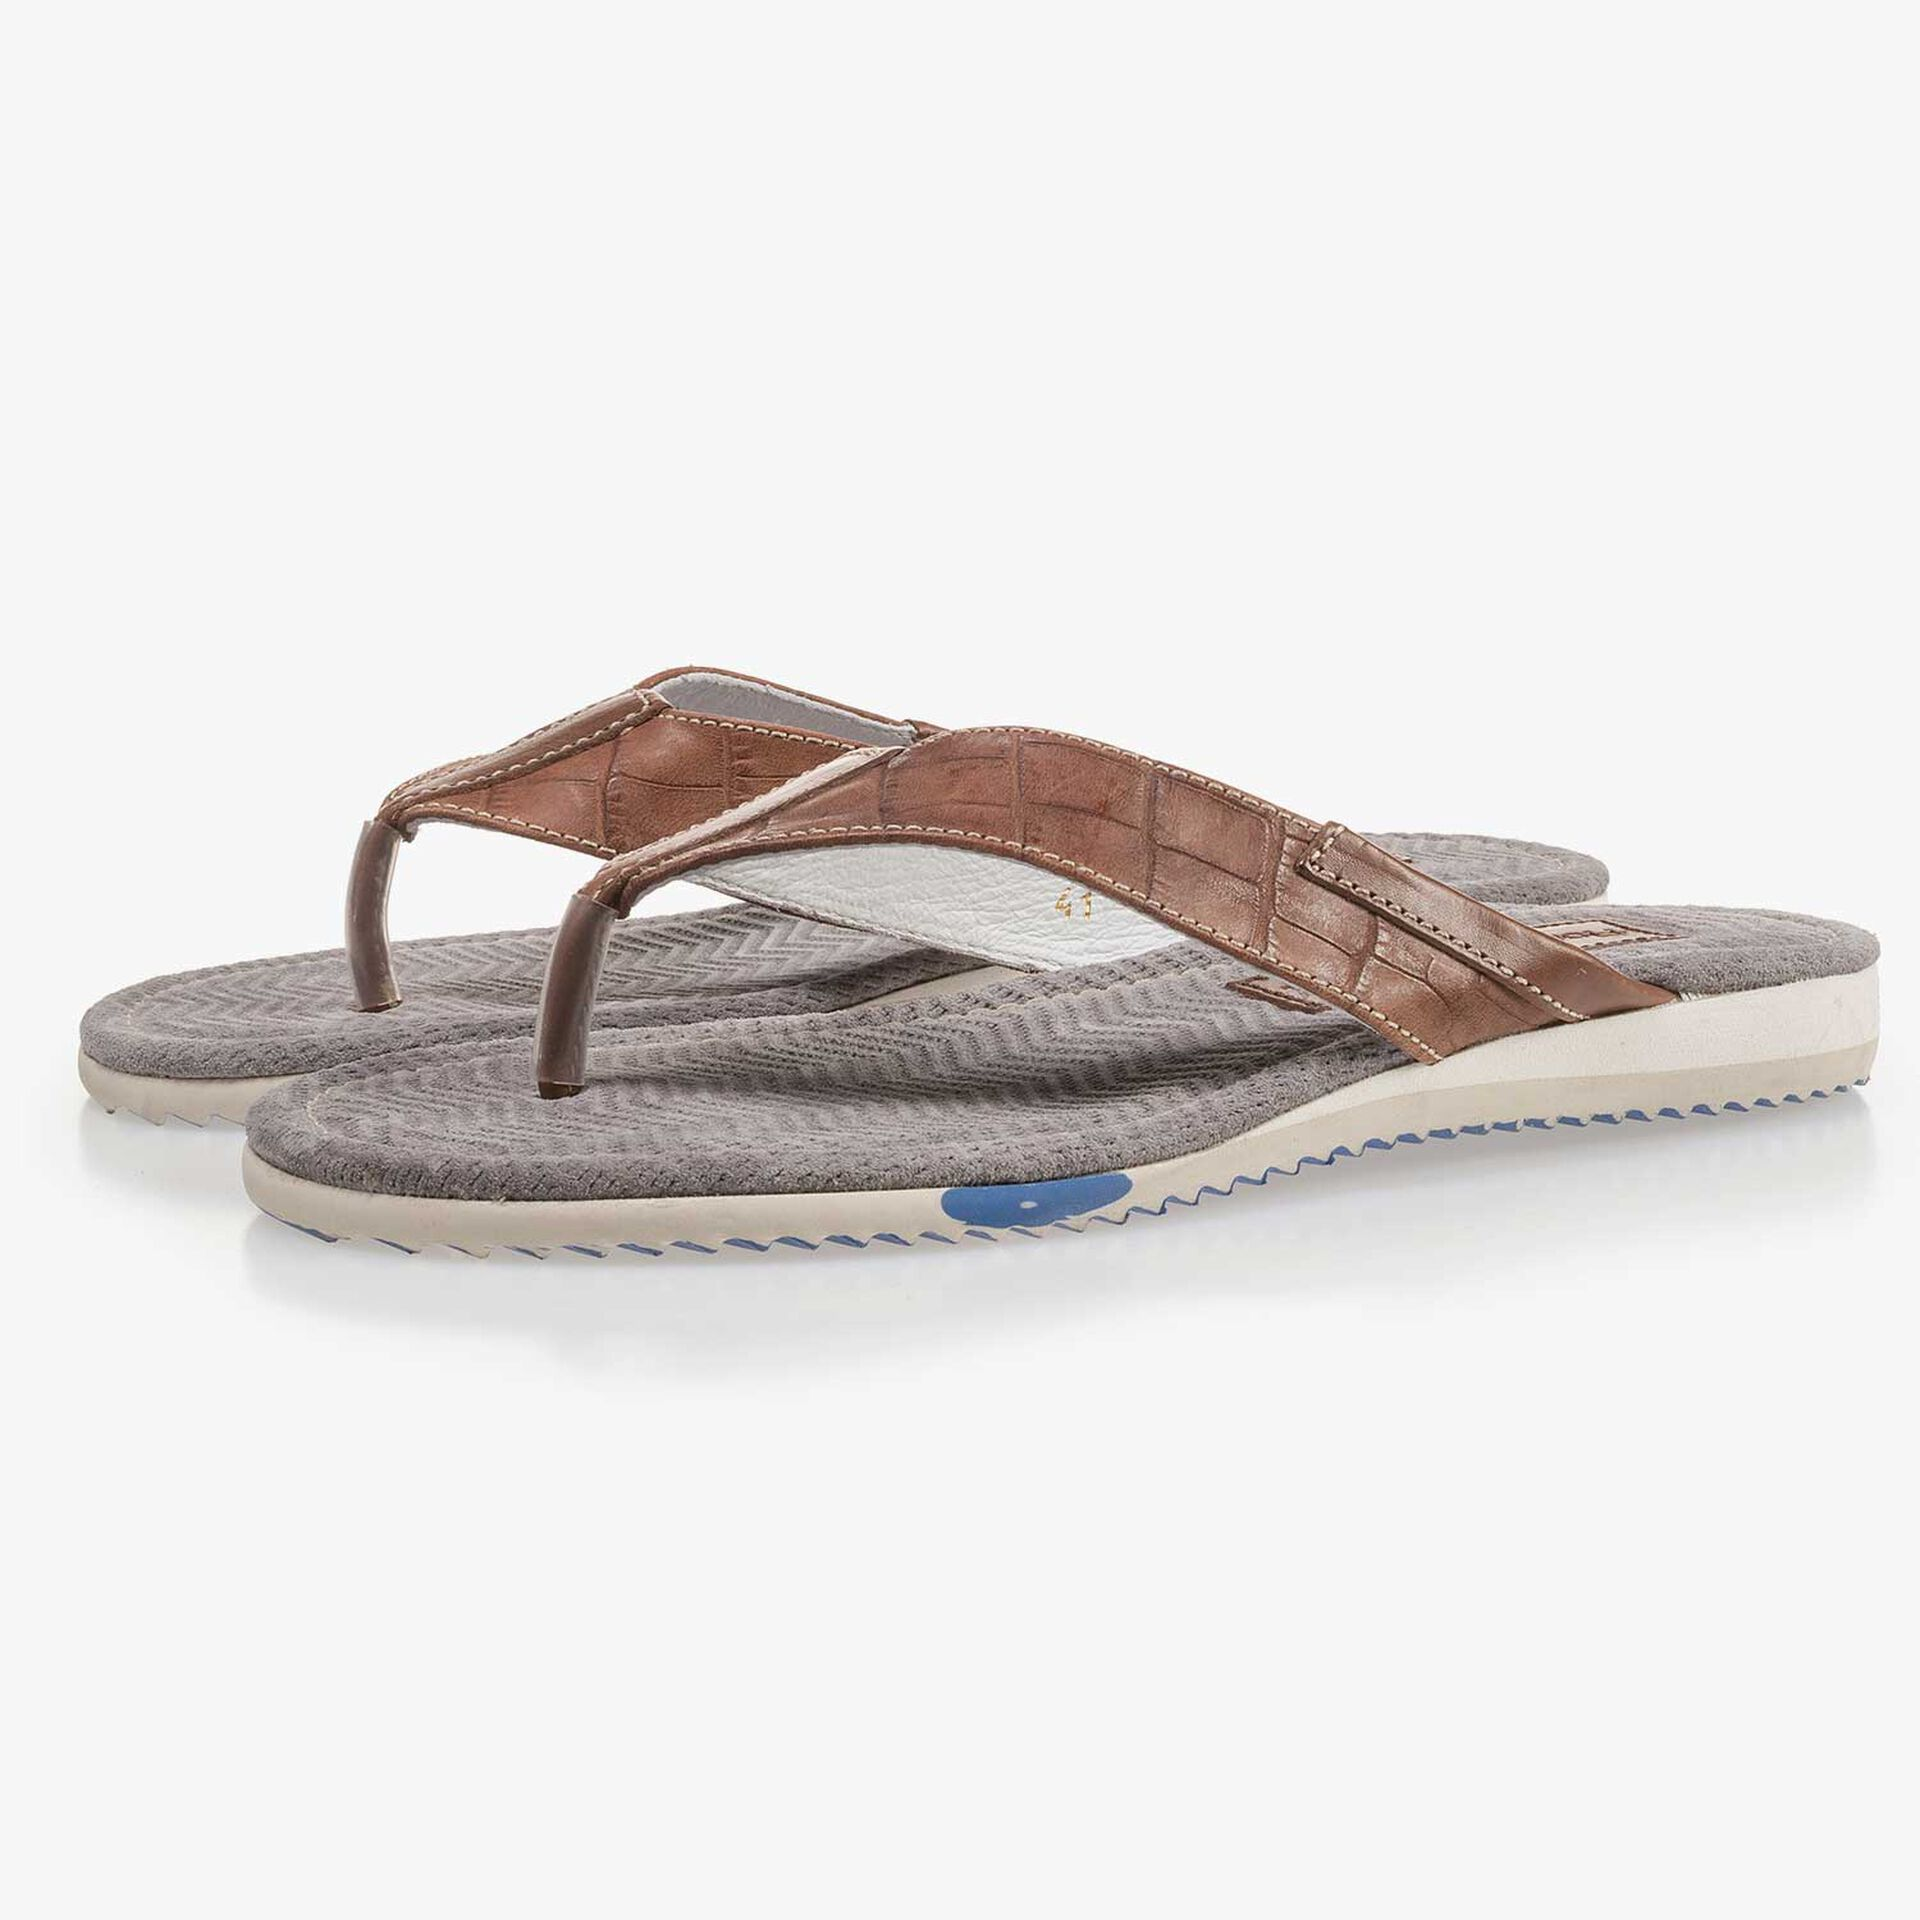 Cognac-coloured leather thong slipper with croco print